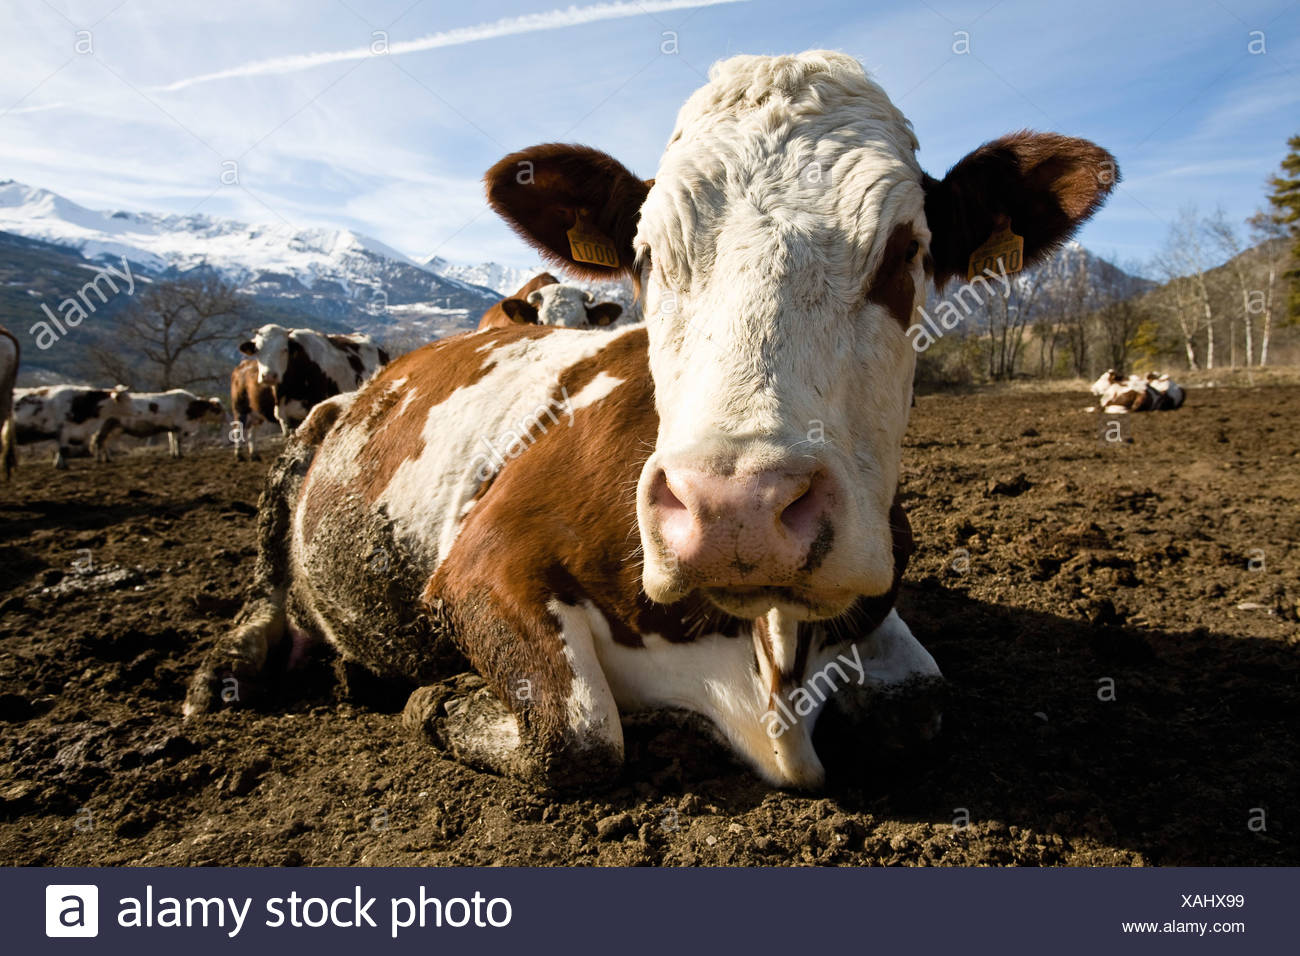 Cow lying down, mountains in background Stock Photo